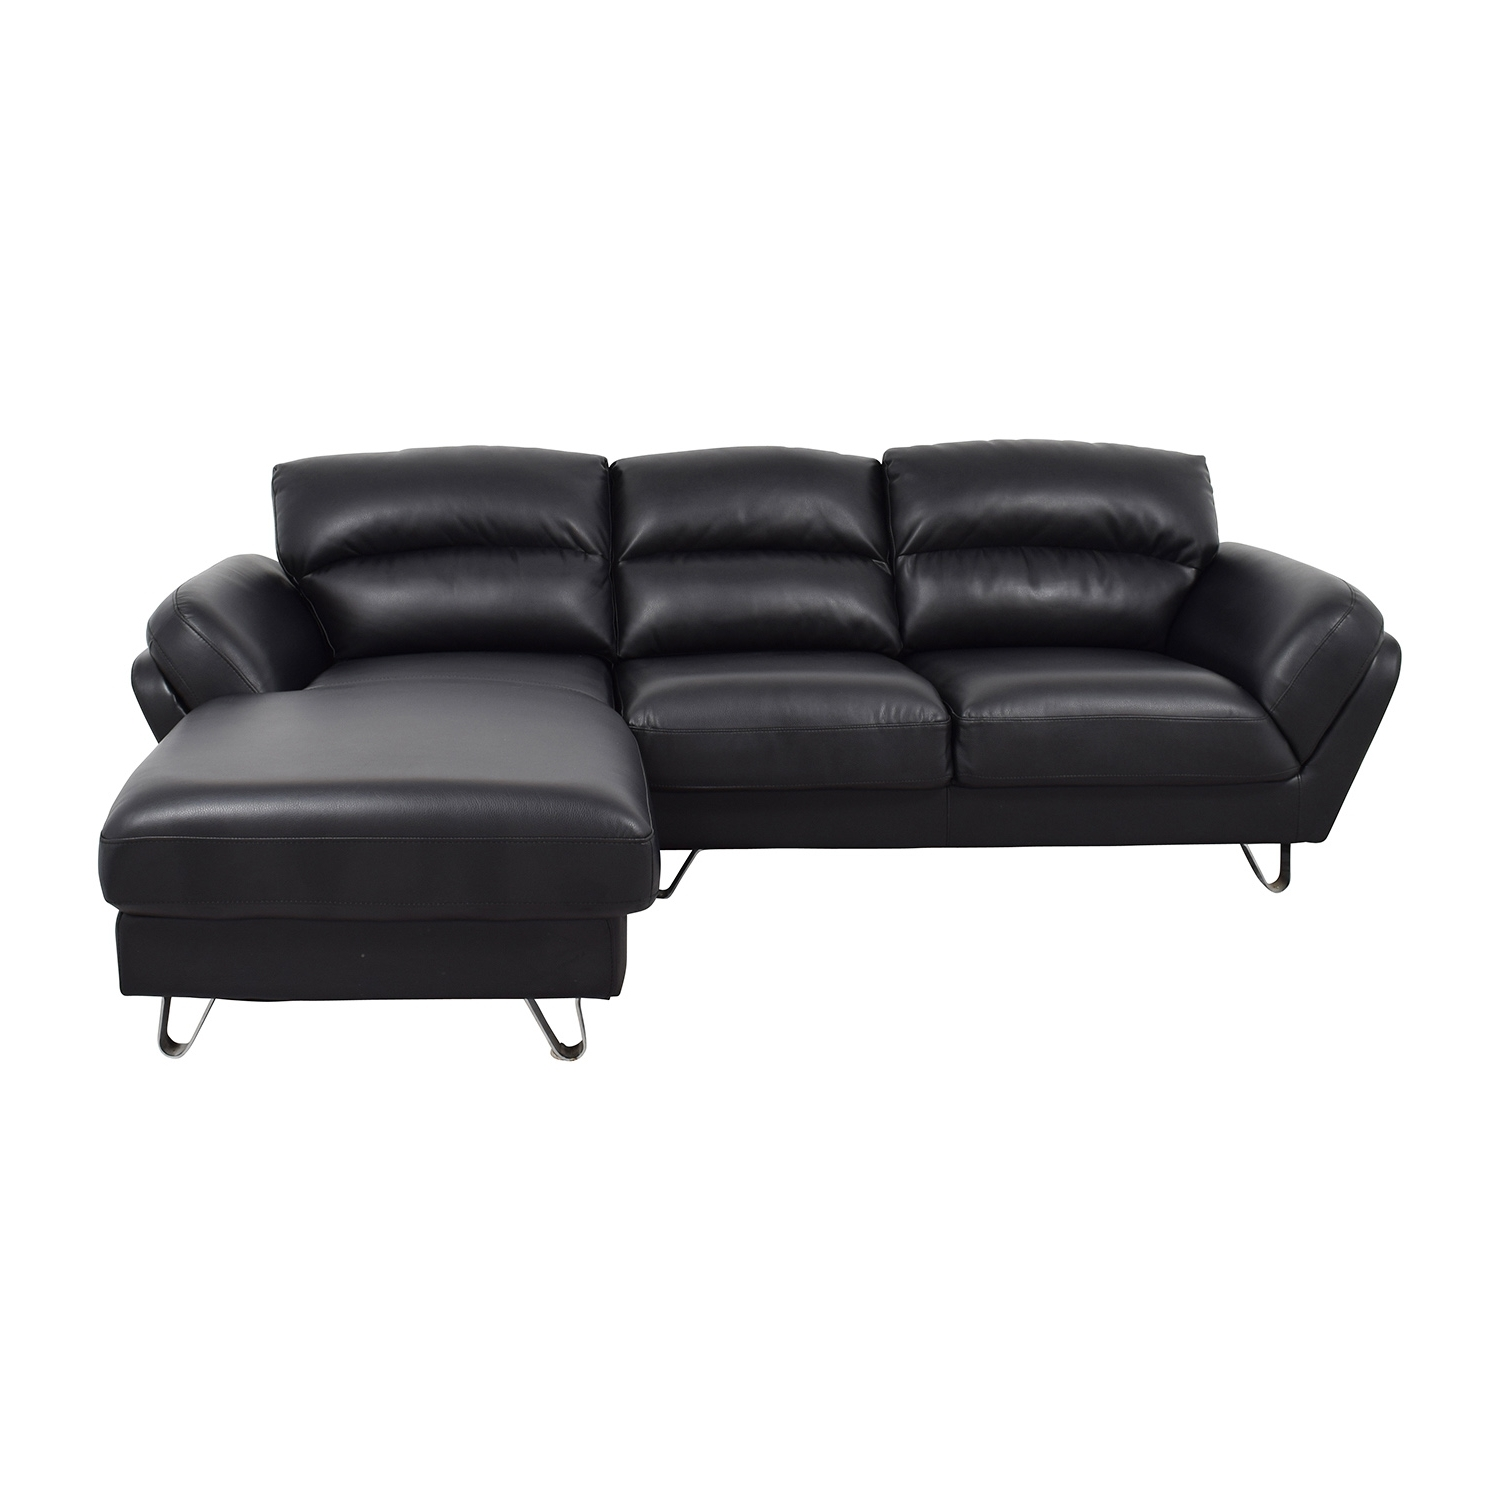 [%51% Off – Contemporary Faux Leather Two Piece Sectional Sofa / Sofas Pertaining To Fashionable Mobilia Sectional Sofas|Mobilia Sectional Sofas For Fashionable 51% Off – Contemporary Faux Leather Two Piece Sectional Sofa / Sofas|Most Recent Mobilia Sectional Sofas Pertaining To 51% Off – Contemporary Faux Leather Two Piece Sectional Sofa / Sofas|Best And Newest 51% Off – Contemporary Faux Leather Two Piece Sectional Sofa / Sofas Throughout Mobilia Sectional Sofas%] (View 1 of 15)